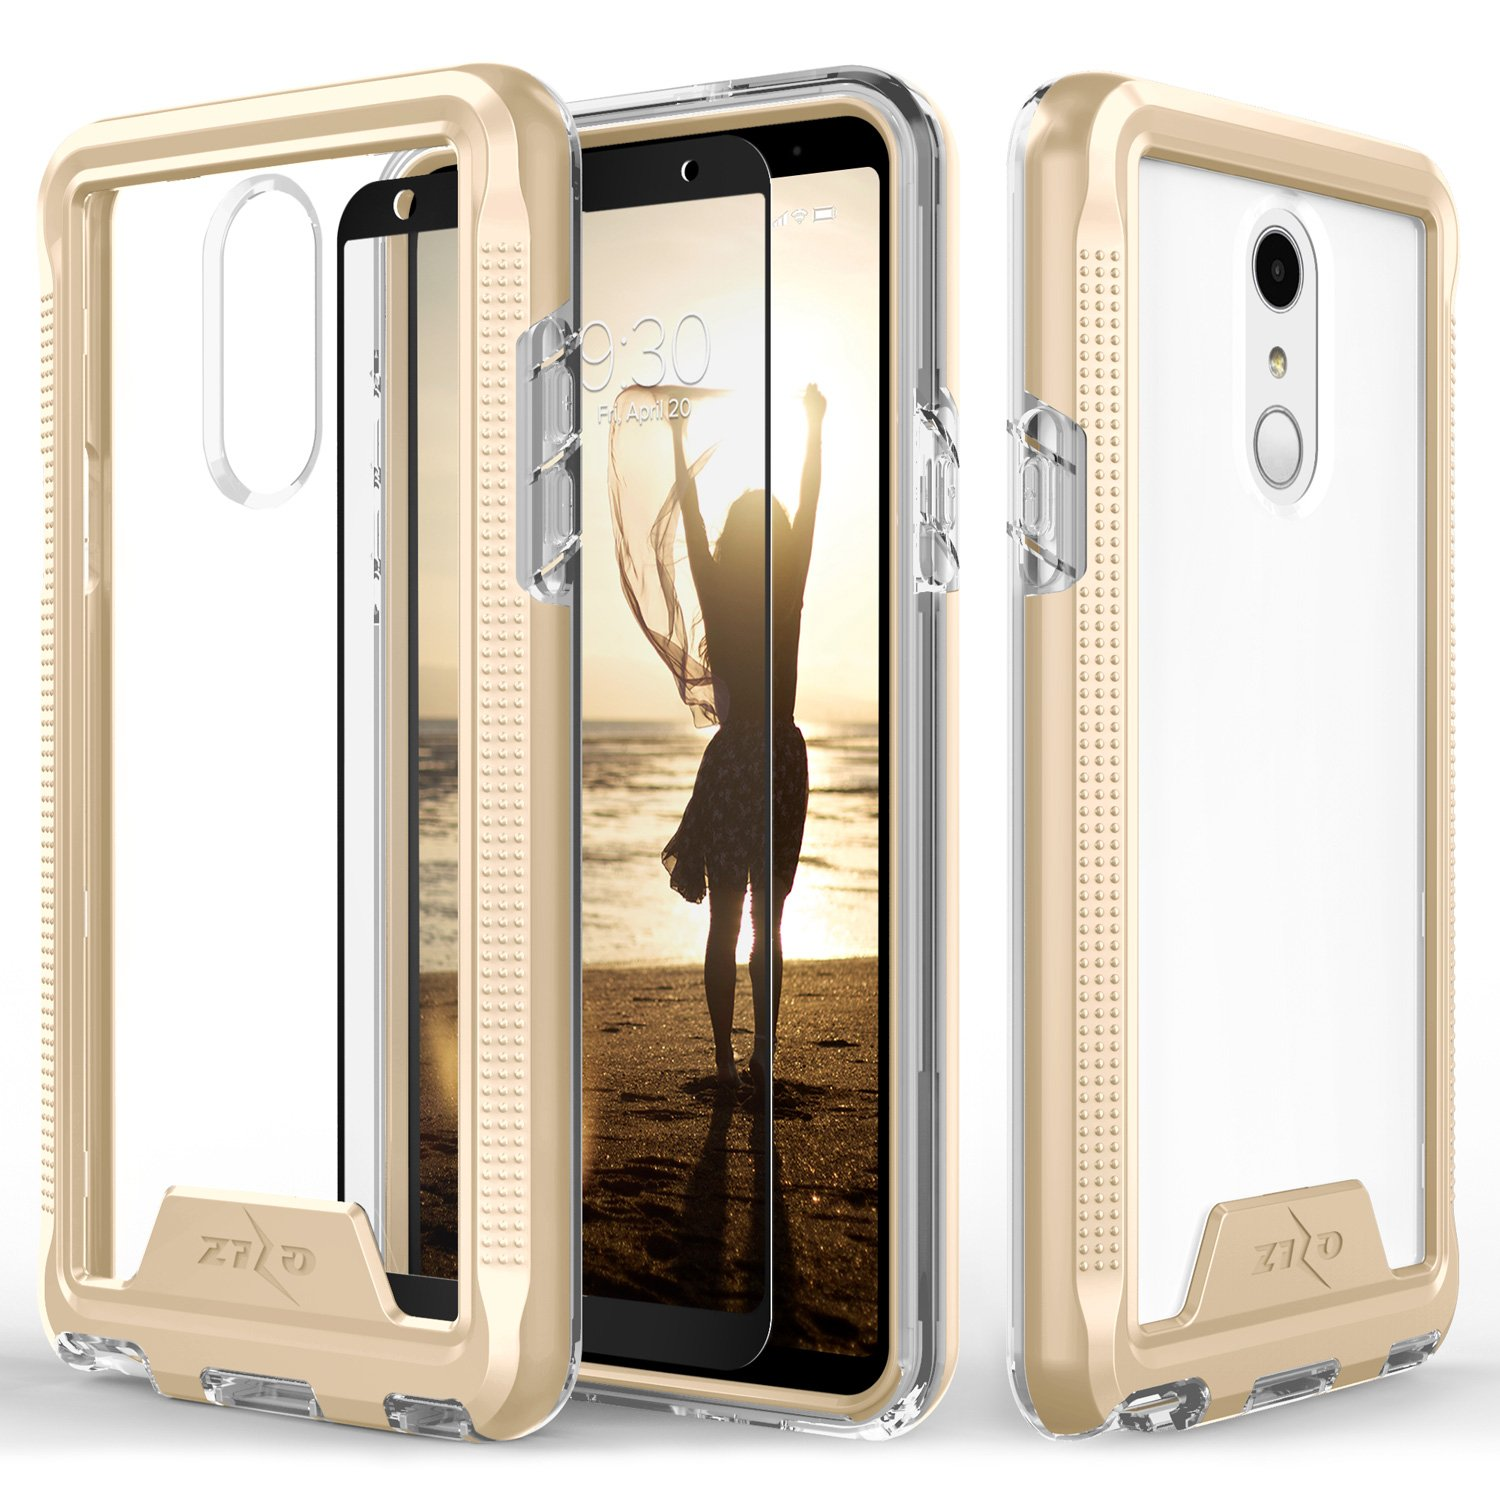 Zizo ION Series Compatible with LG Stylo 4 Case Military Grade Drop Tested with Tempered Glass Screen Protector Black Smoke